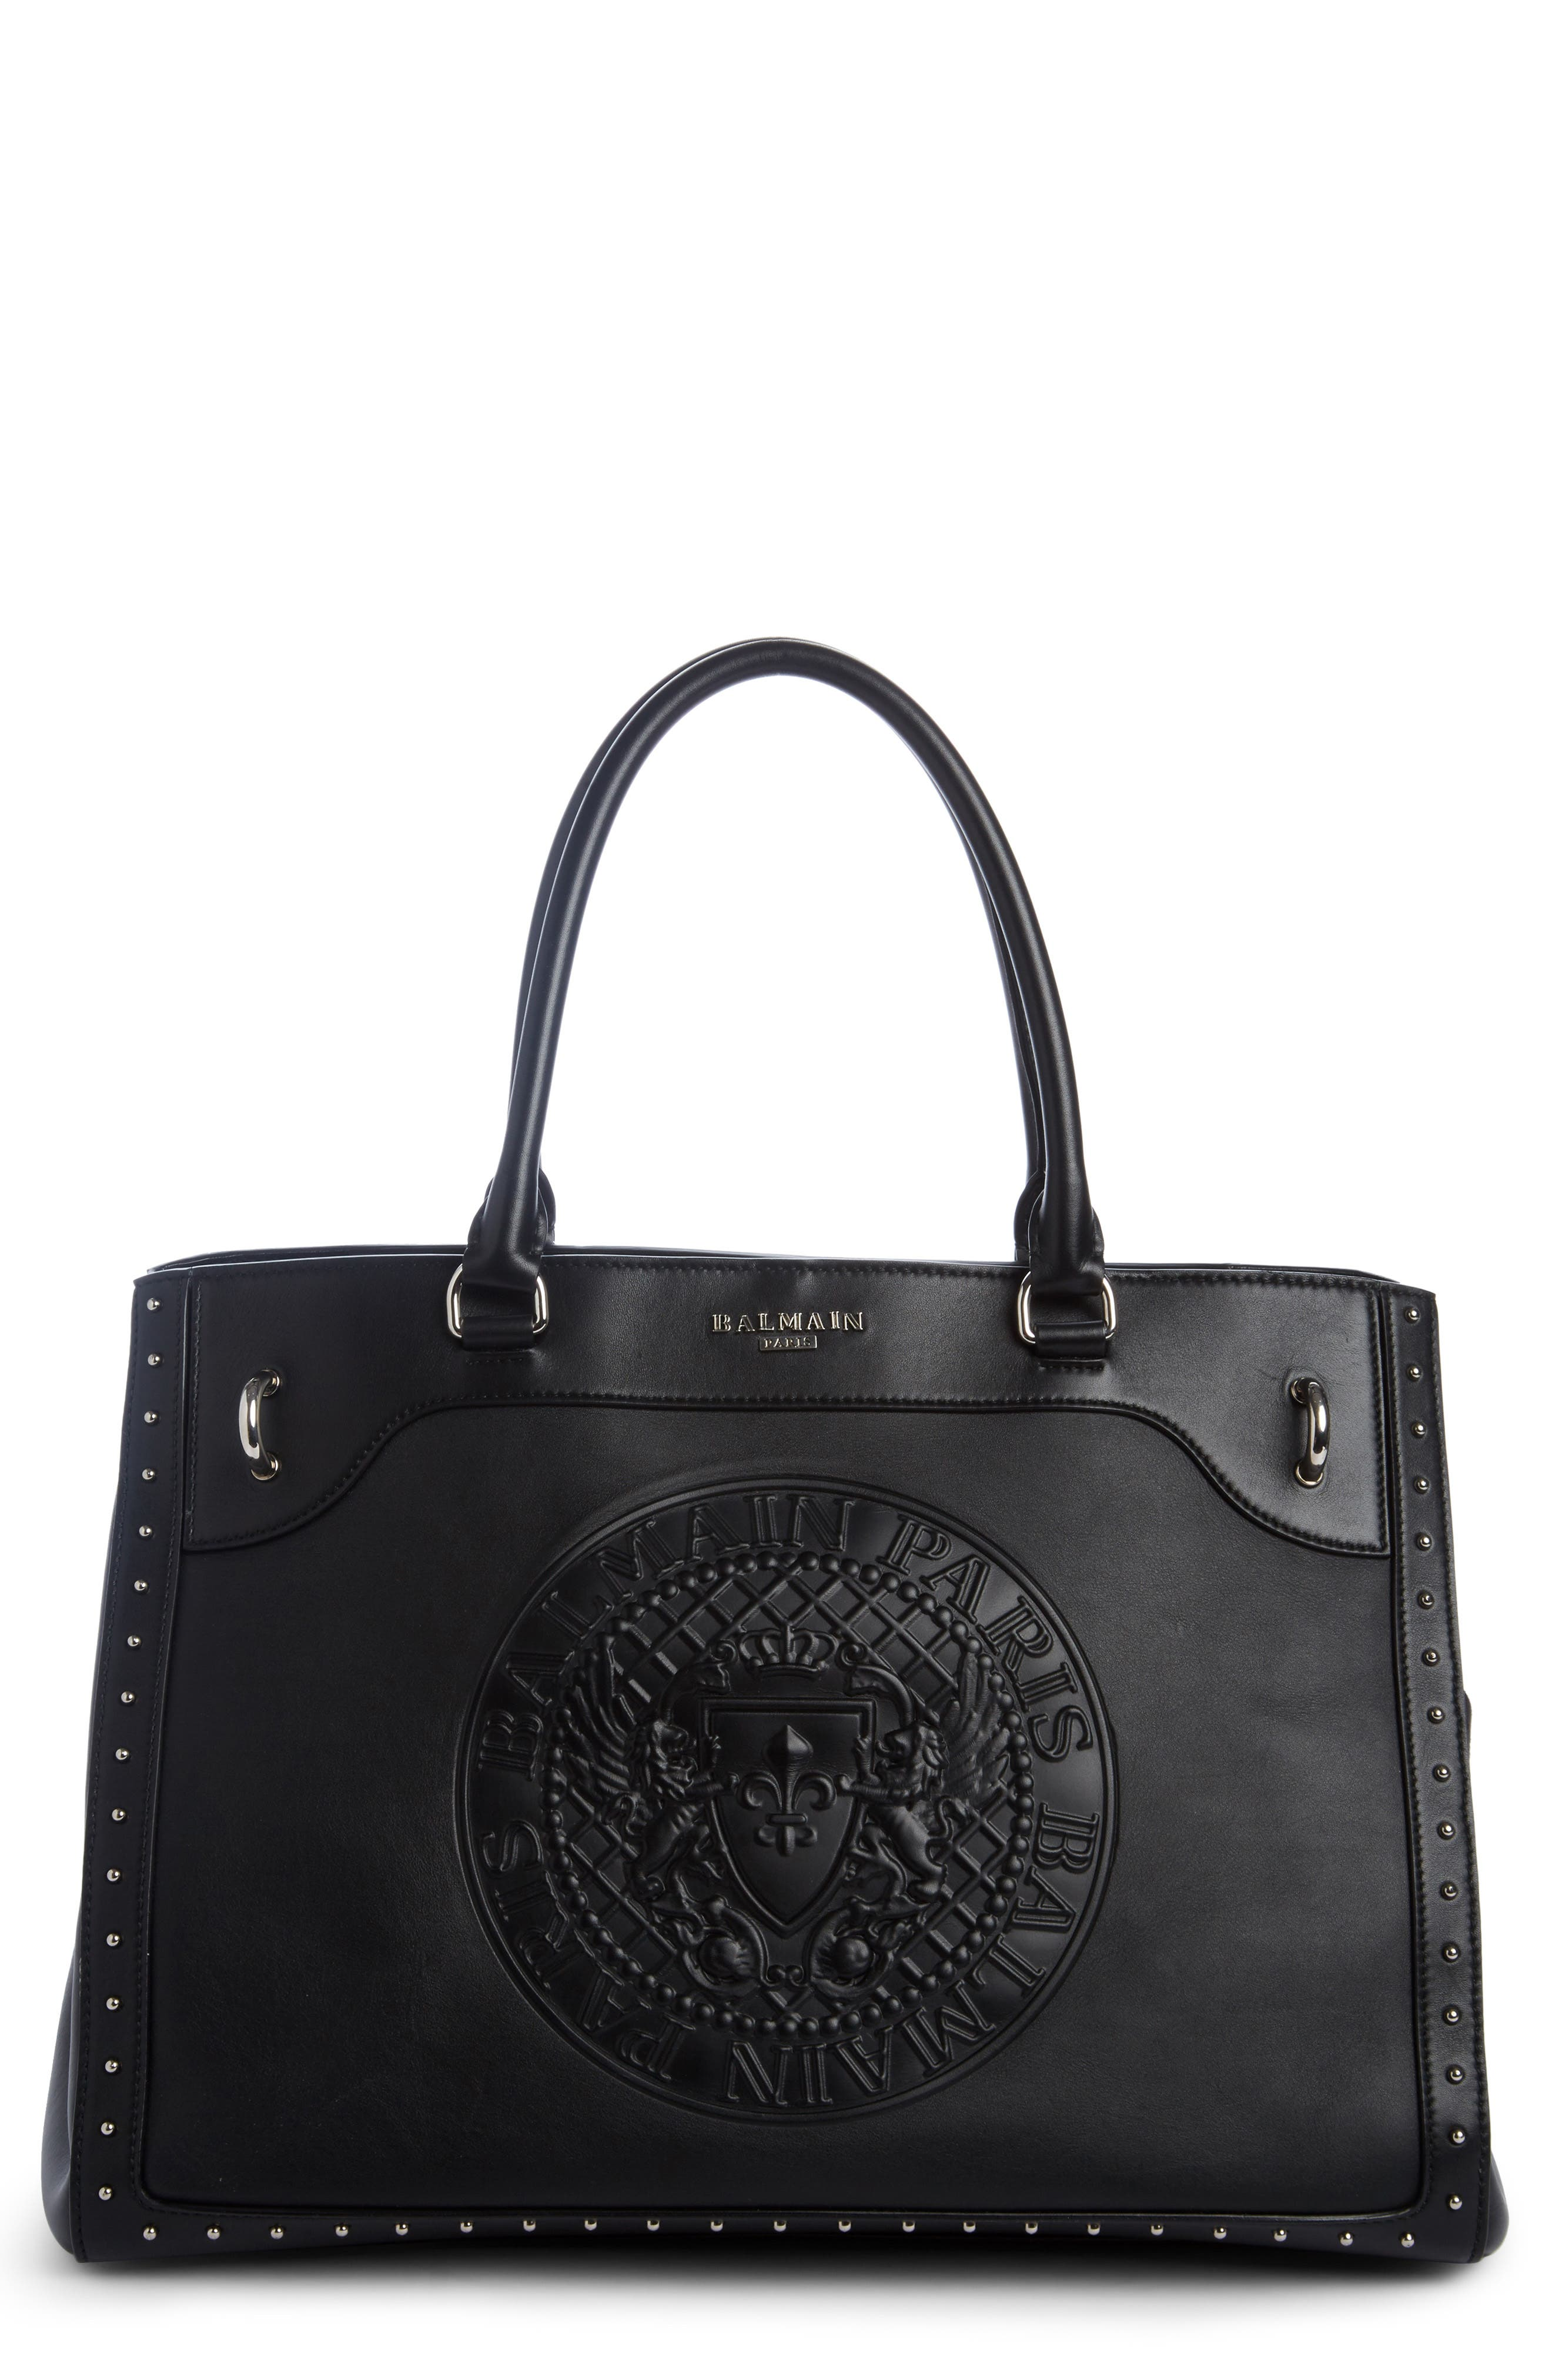 Renaissance Leather Tote,                             Main thumbnail 1, color,                             NOIR